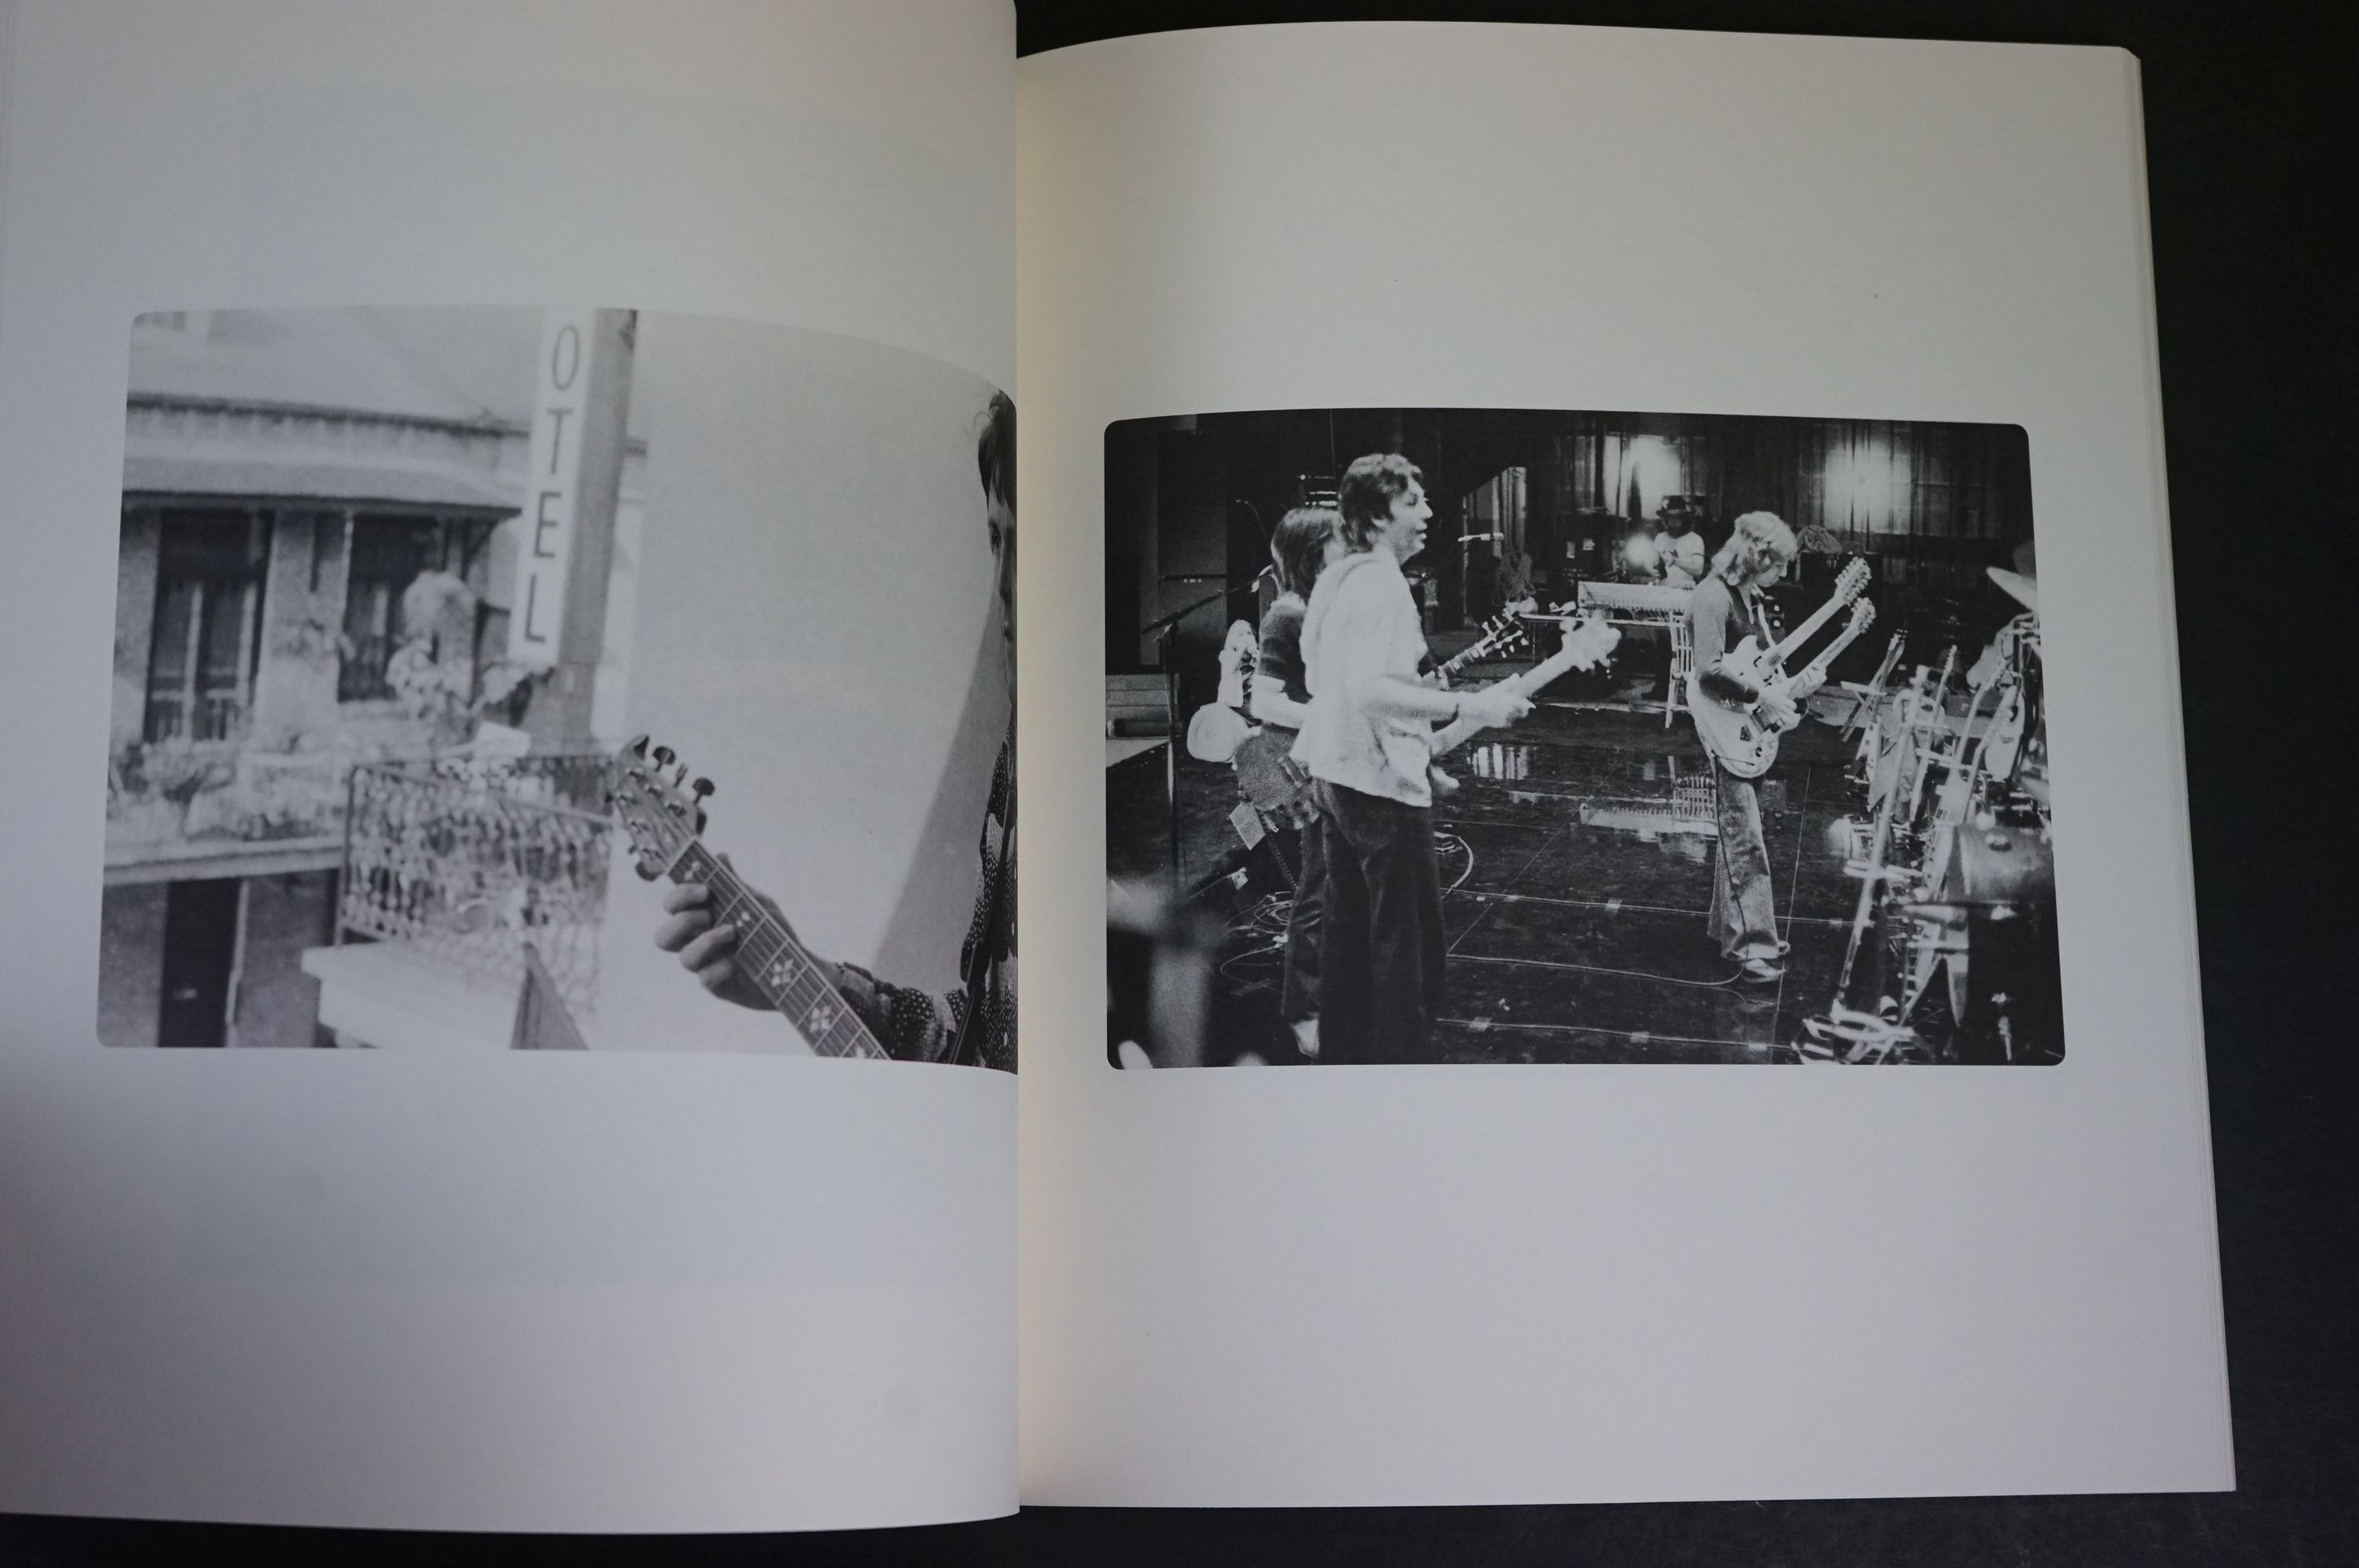 Box Set - Paul McCartney & Wings - Wings Over America numbered box set (03555) deluxe box set, ex - Image 11 of 18